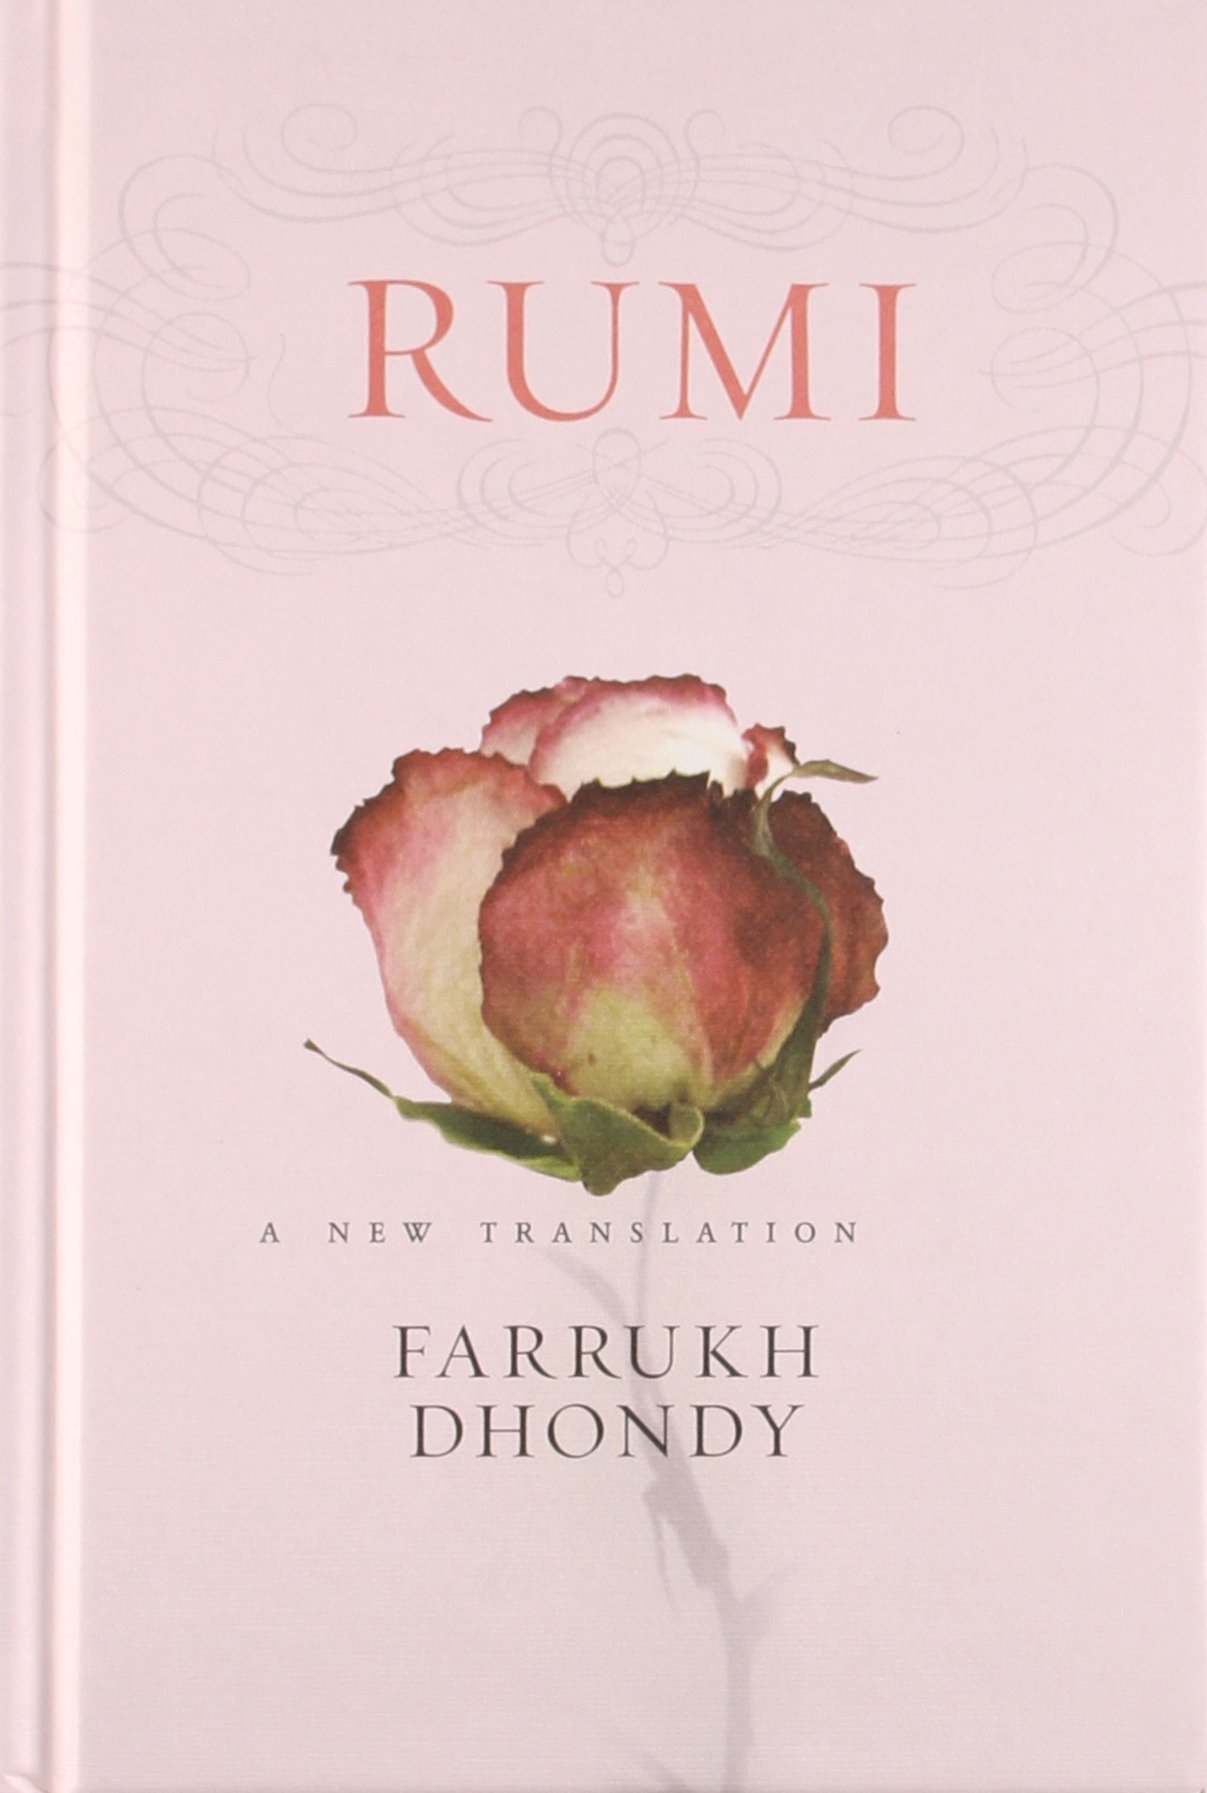 Rumi by Farrukh Dhondy